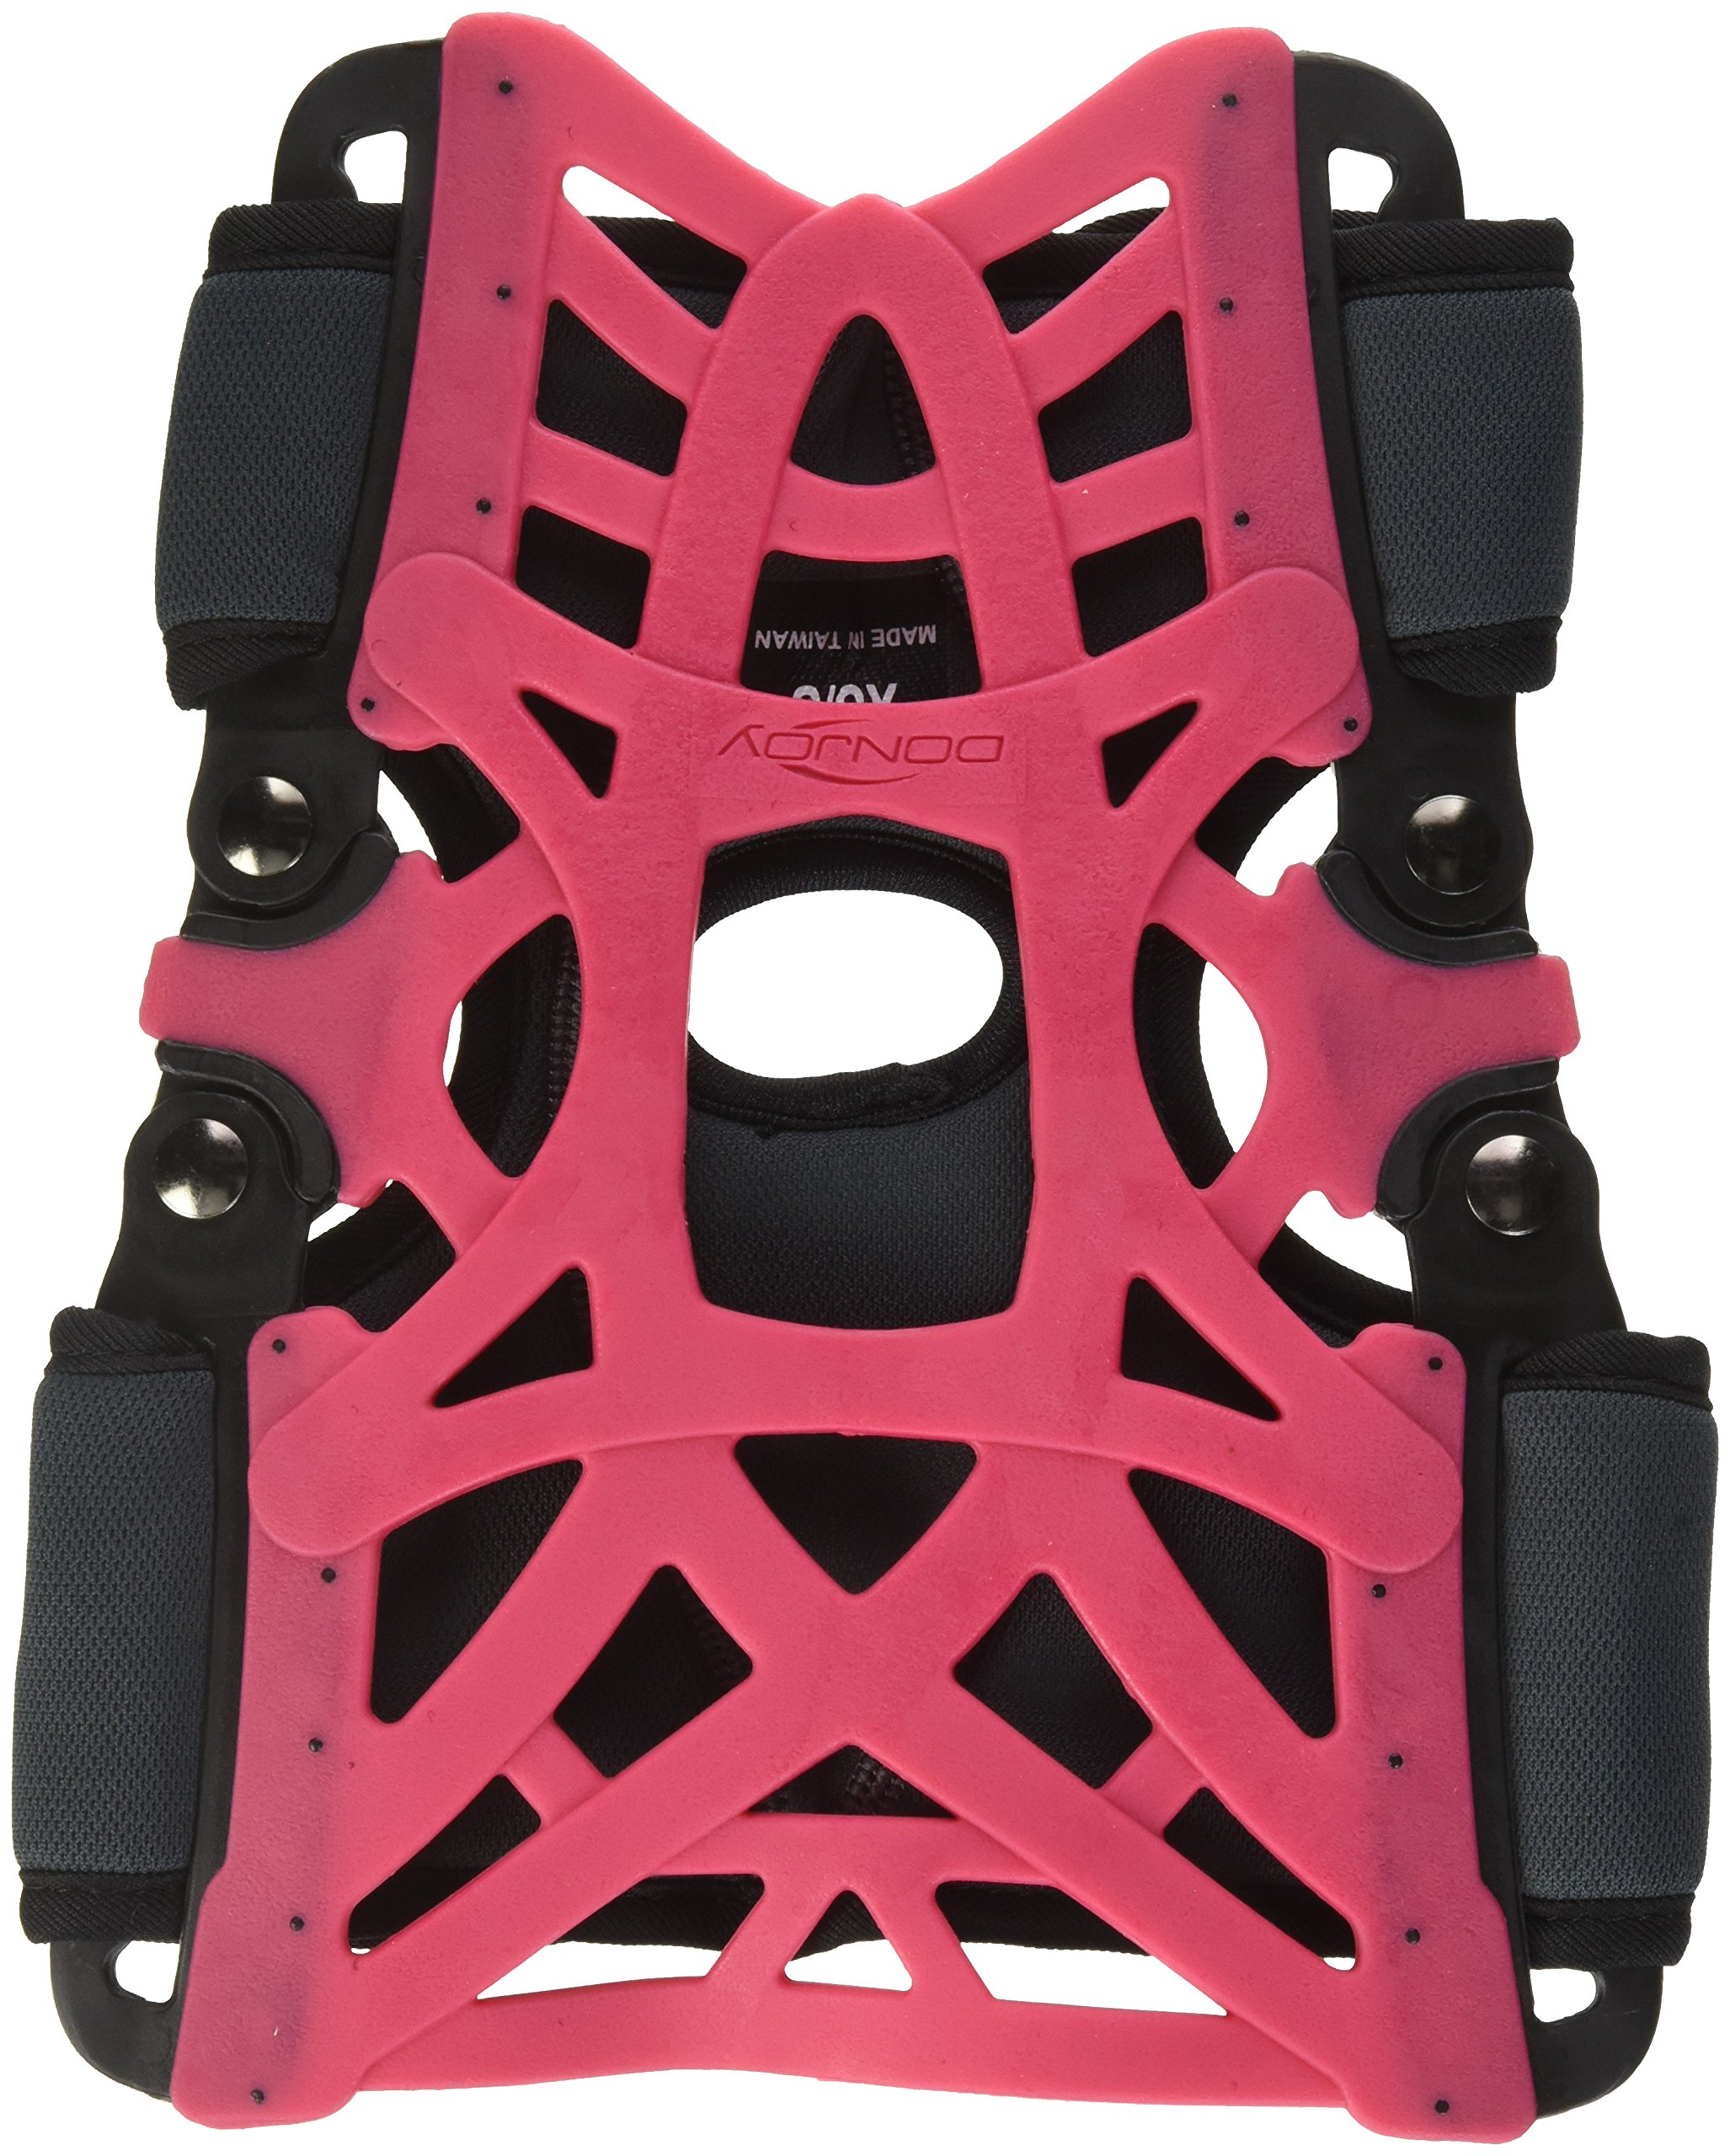 DonJoy Reaction Web Knee Support Brace with Compression Undersleeve: Pink, X-Small/Small